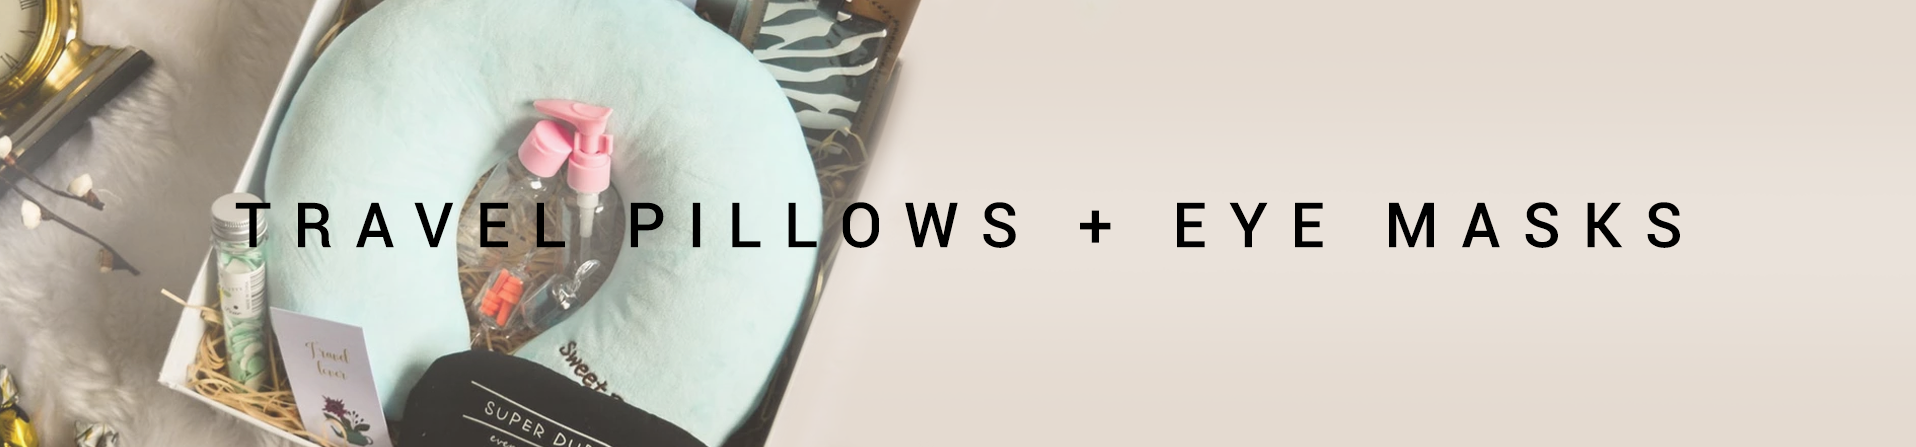 - Travel Pillows + Eye Masks -